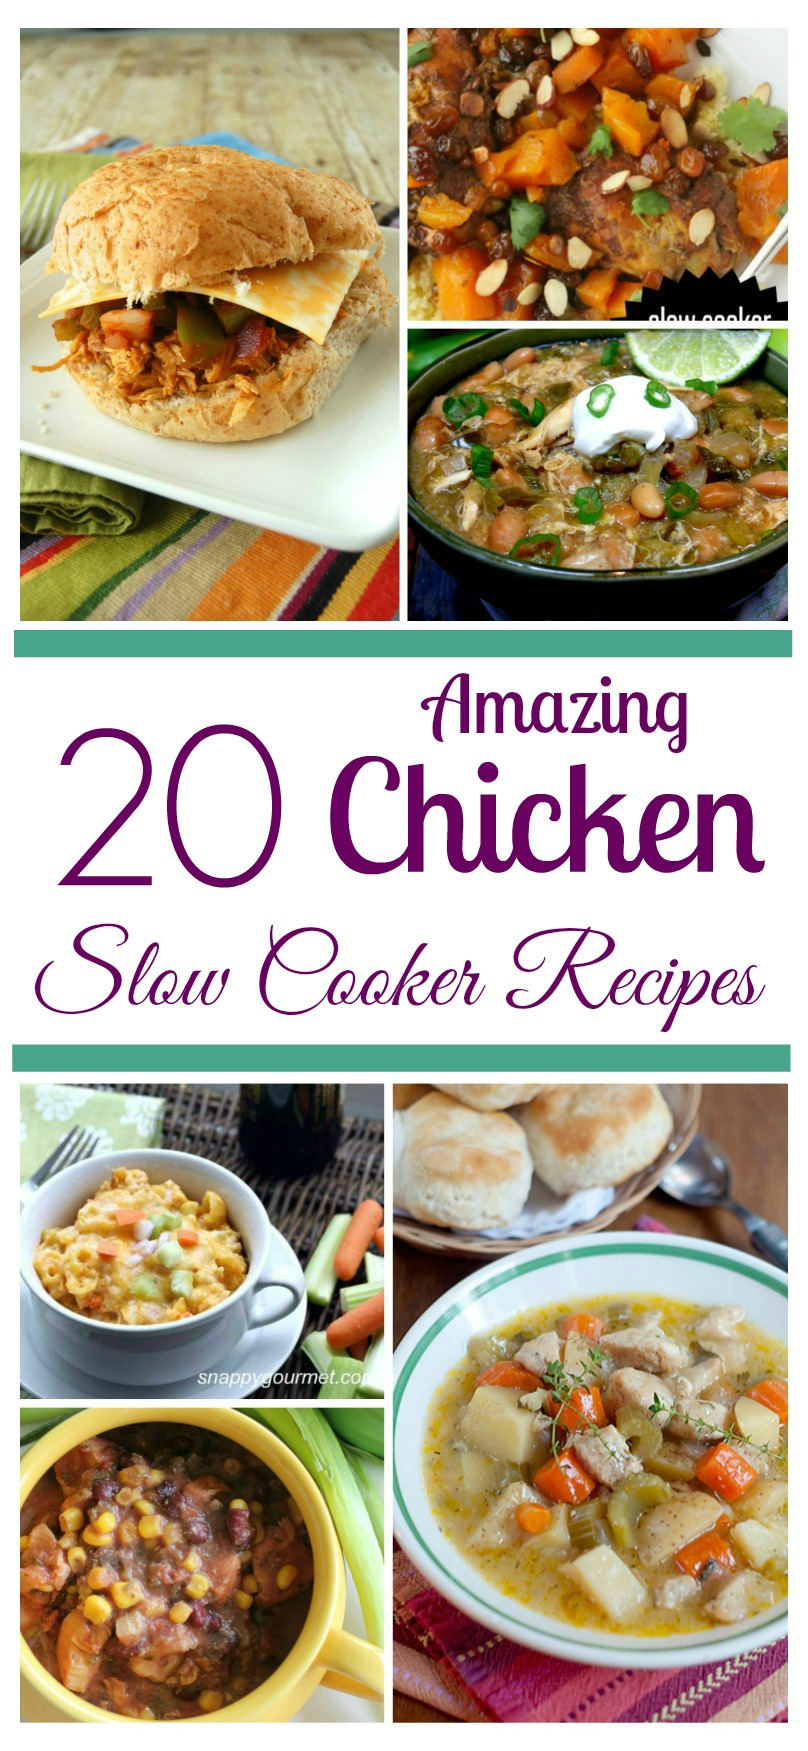 Looking for delicious chicken recipes for your slow cooker? Check out these 20 Amazing Chicken Slow Cooker Recipes that are perfect for any family!